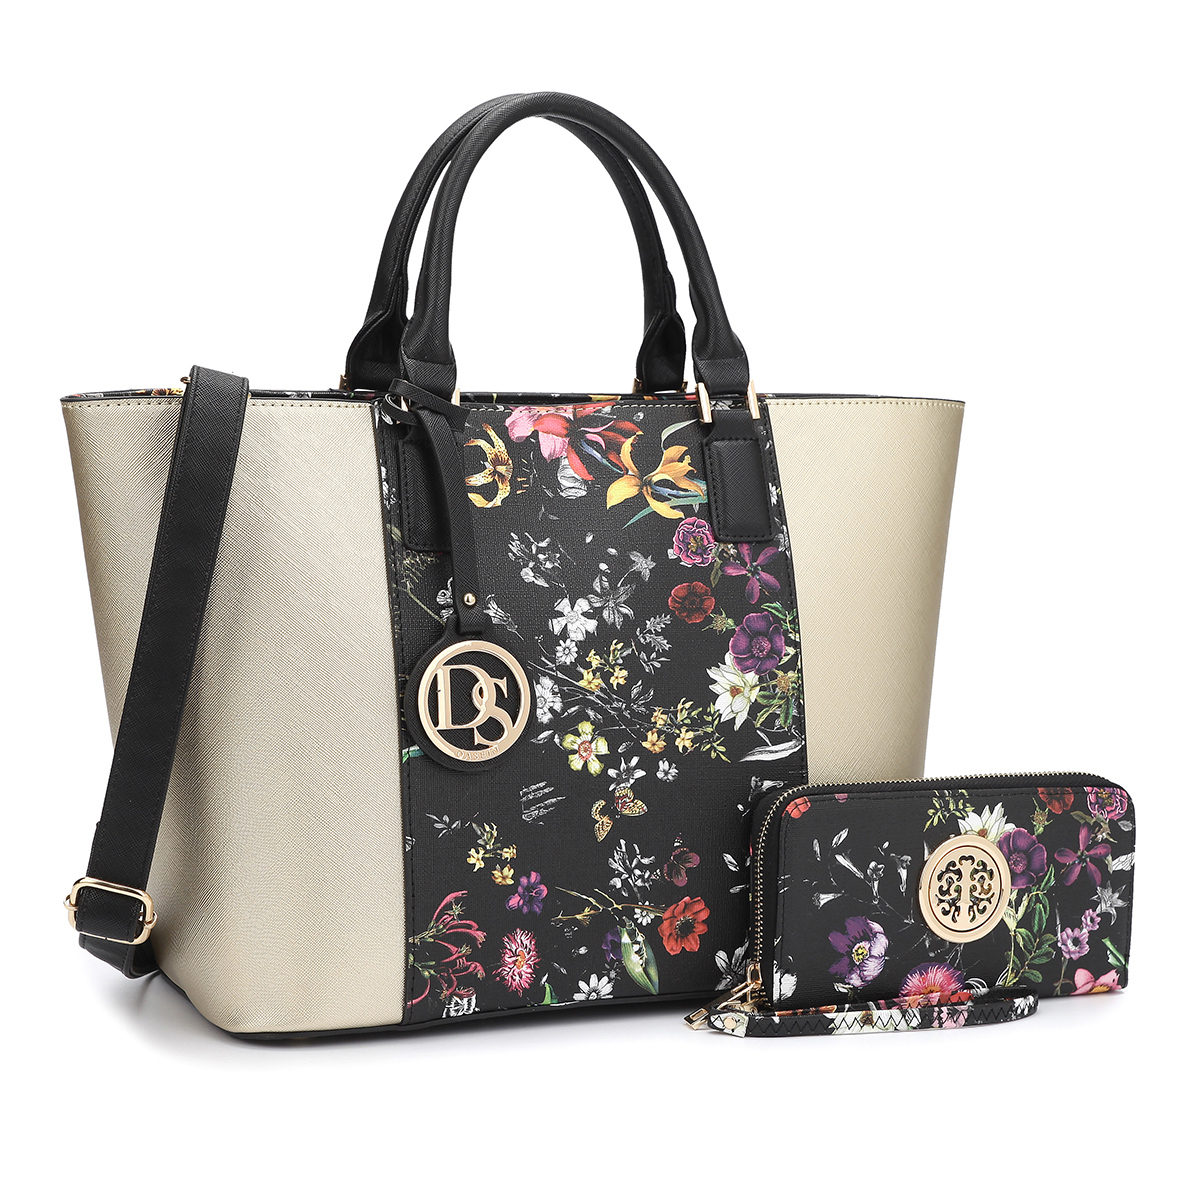 ® Medium Classic Tote Bag with Matching wallet